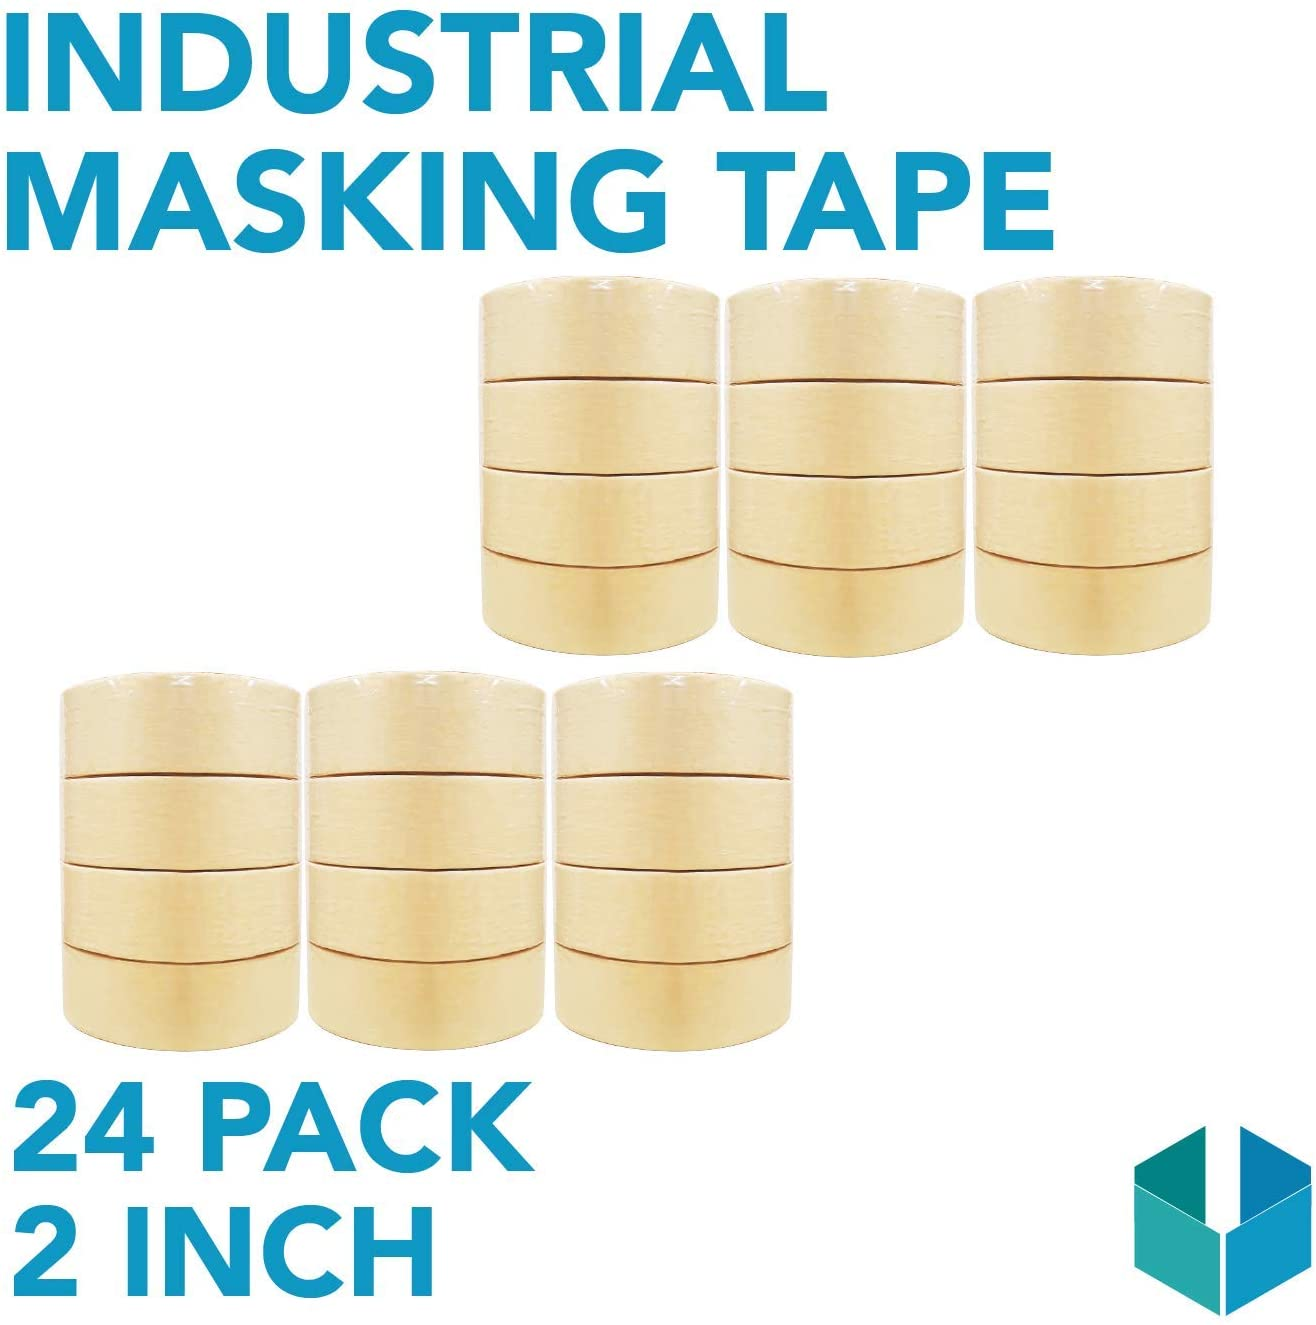 Industrial Masking Tape for General Purpose/Painting - CASE of 24-2